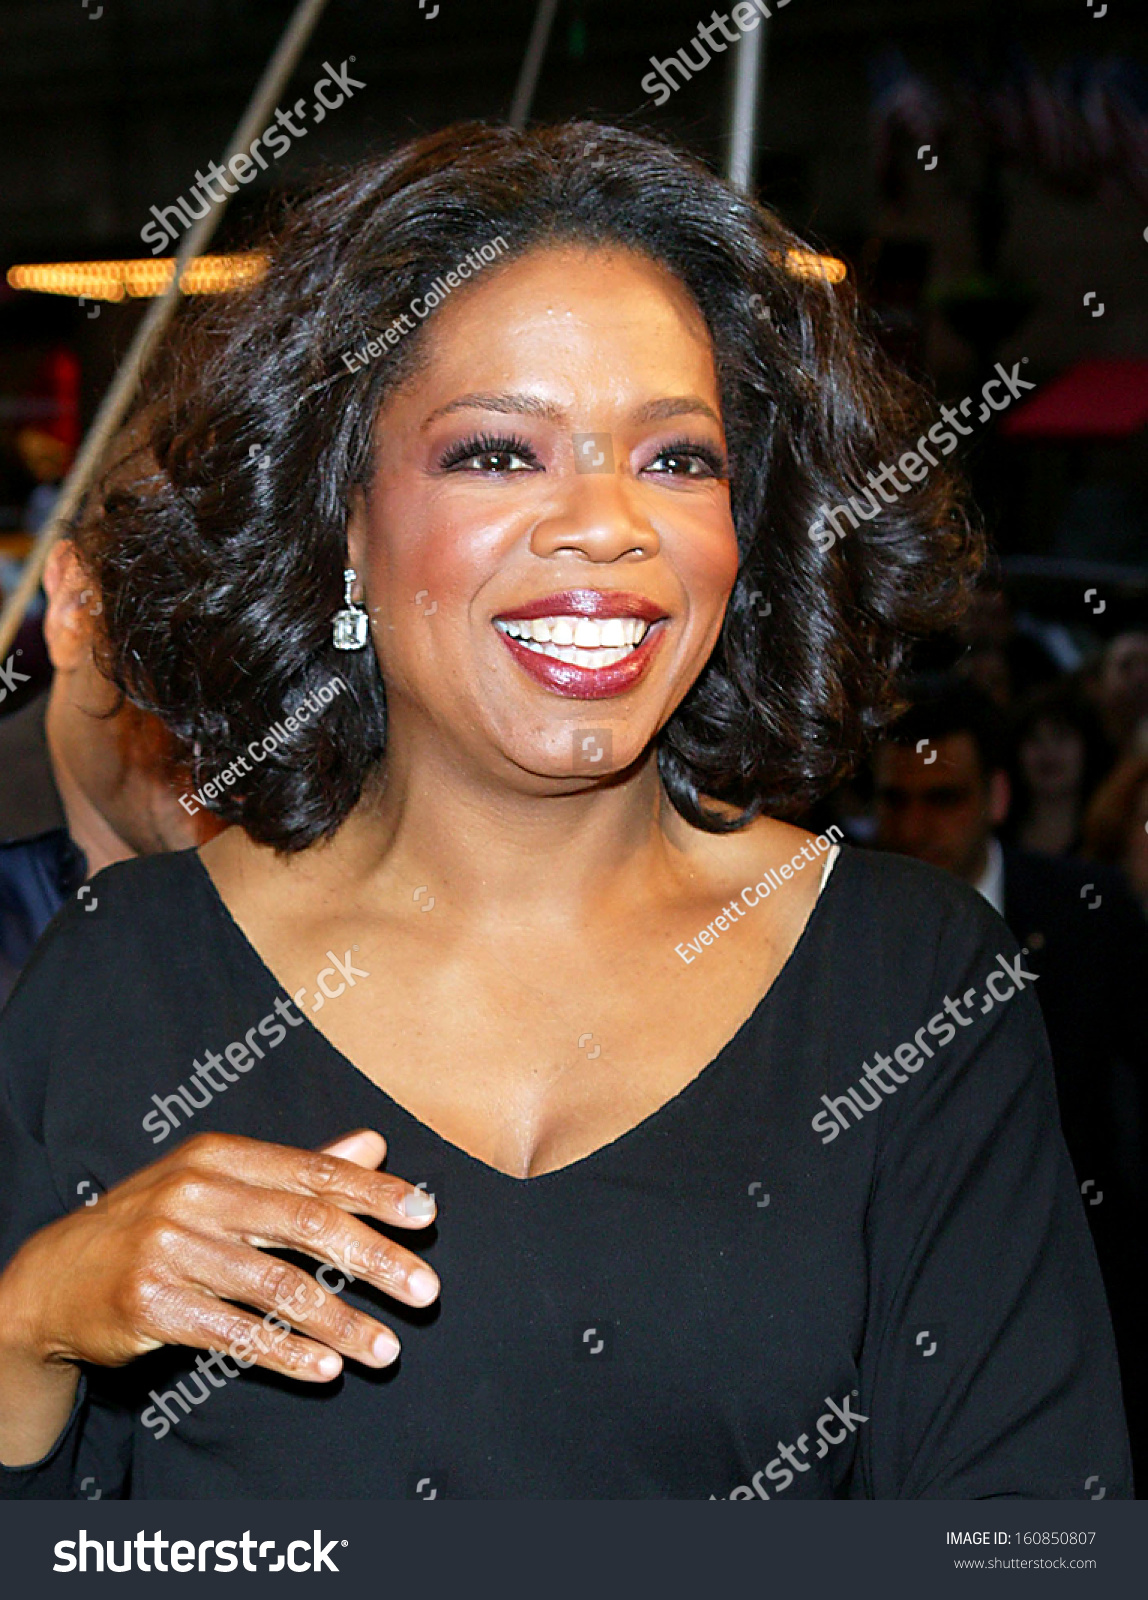 Tv Host Oprah Winfrey Attends The Sesame Workshop'S Second Annual Benefit Gala At Cipriani'S 42nd St June 2, 2004 In New York City Stock Photo ...